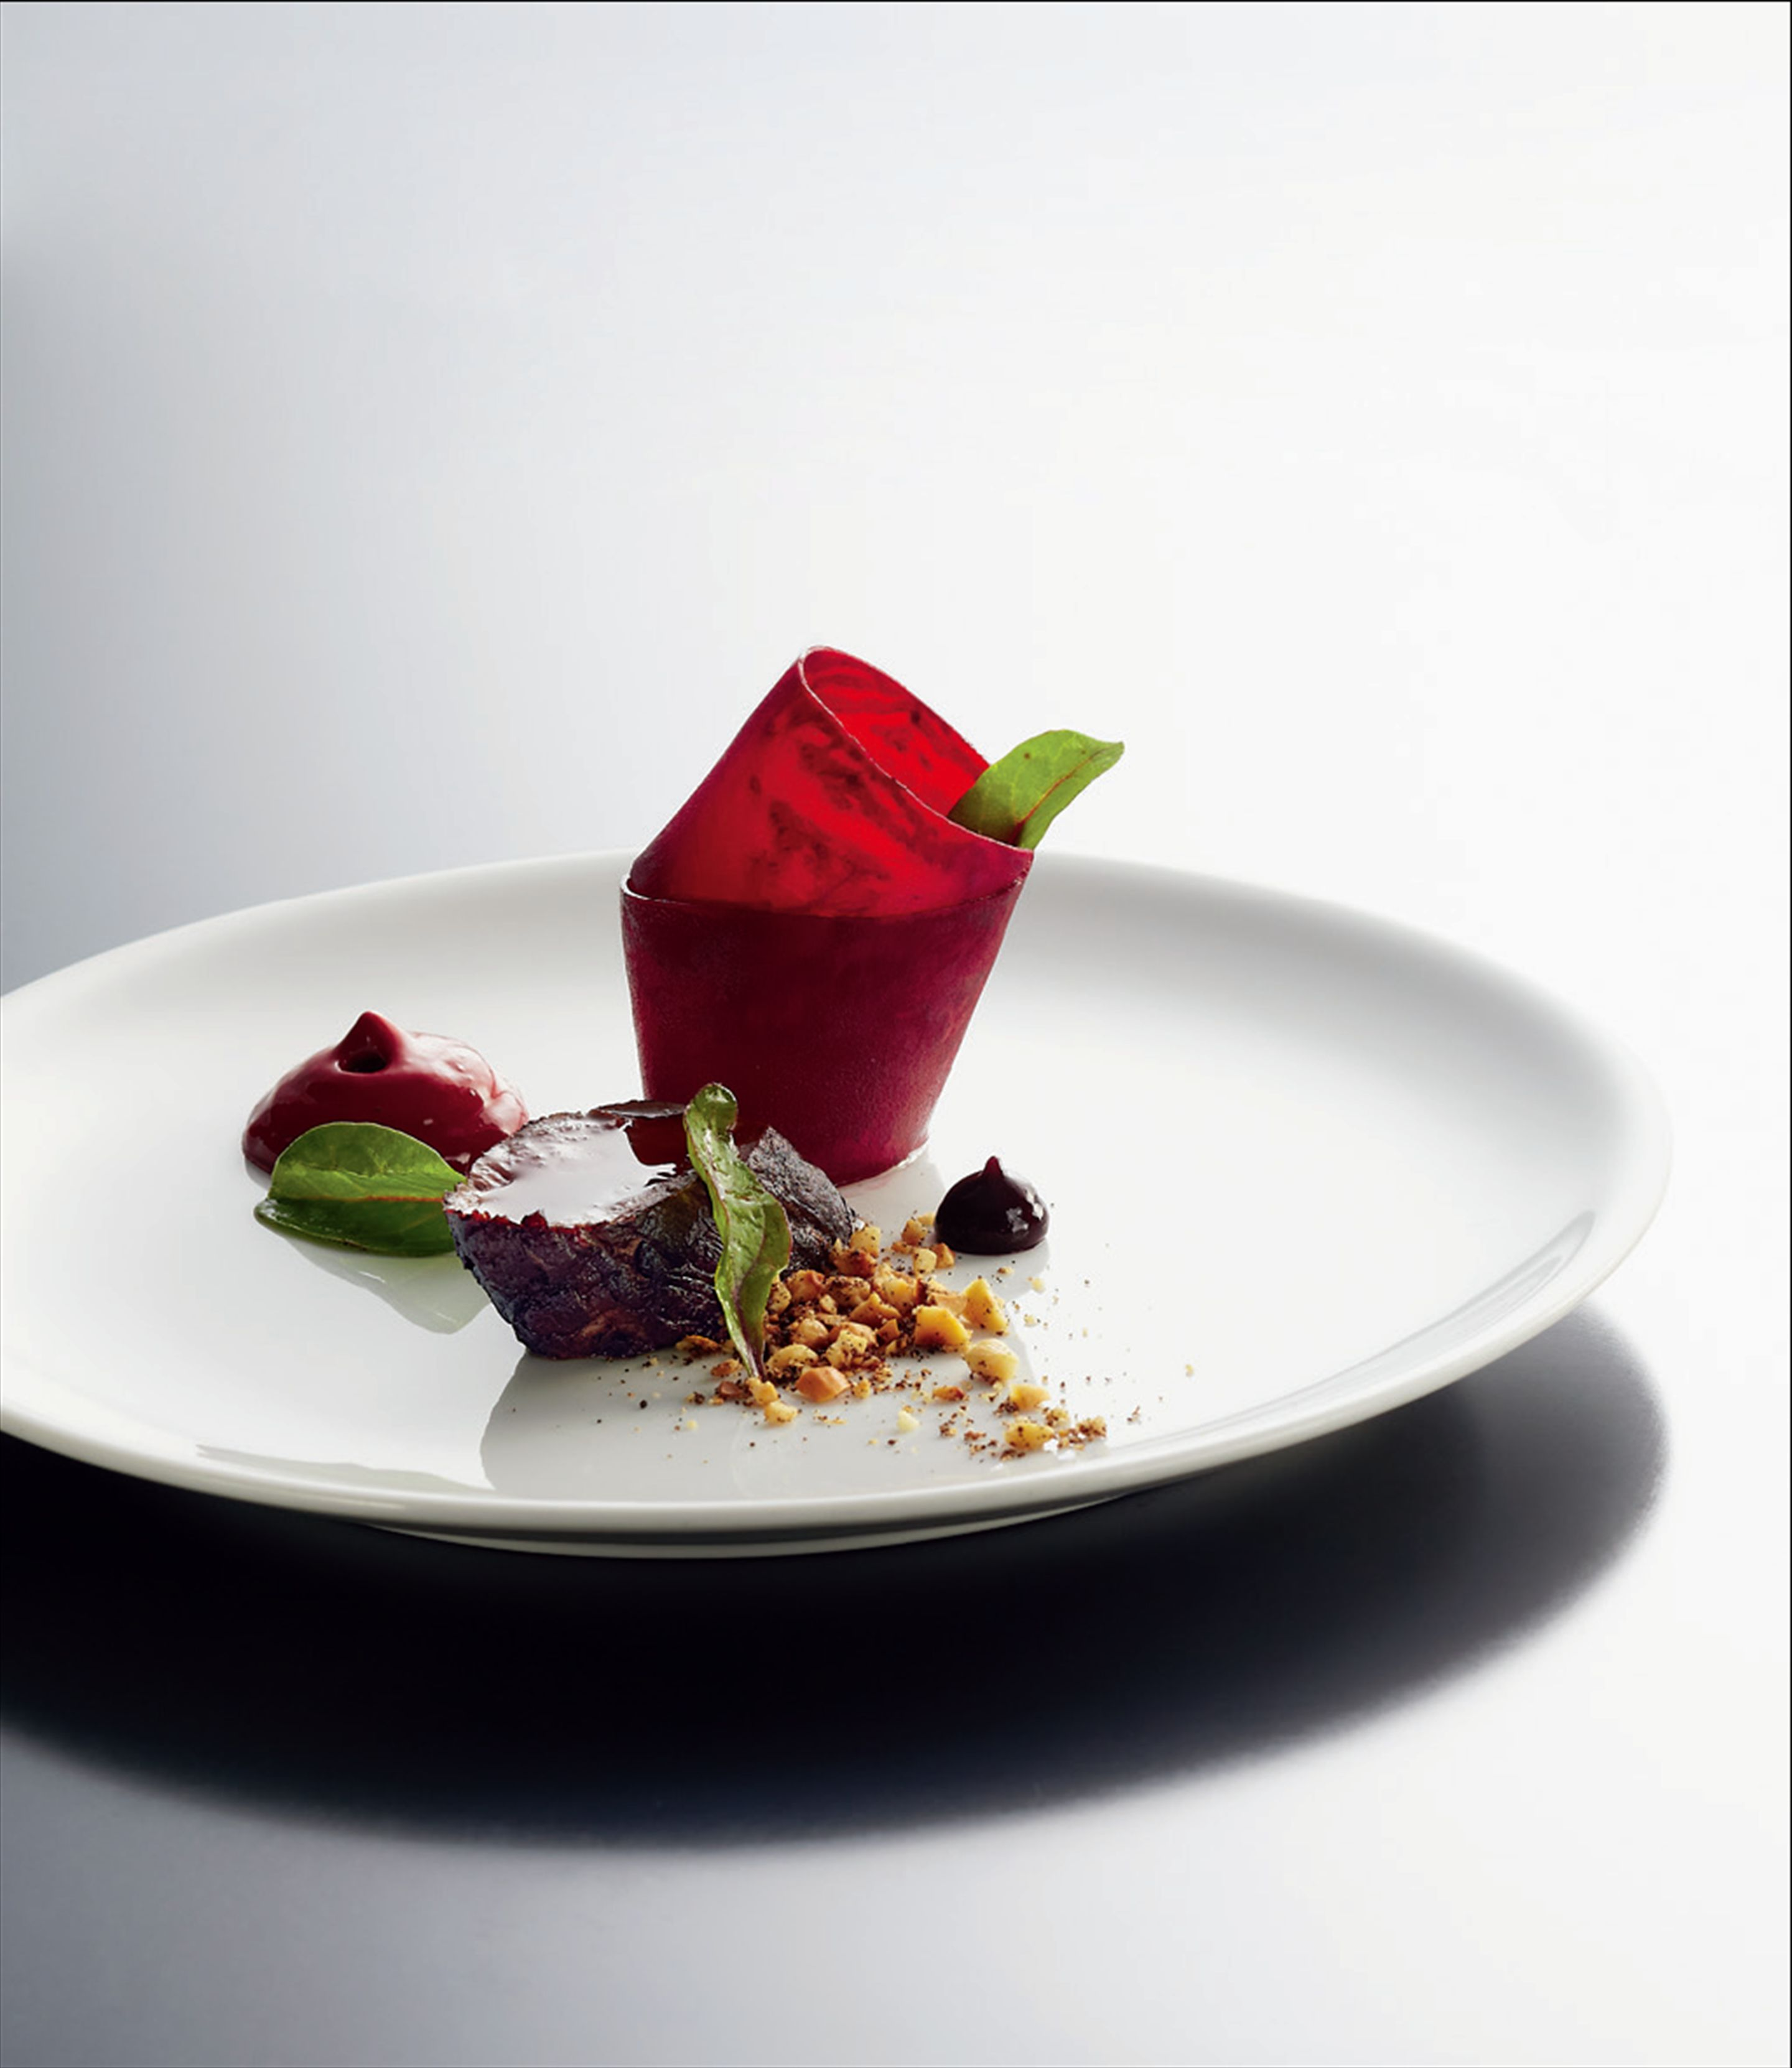 Venison tenderloin with beetroot and cocoa, and peanut and vanilla crumble